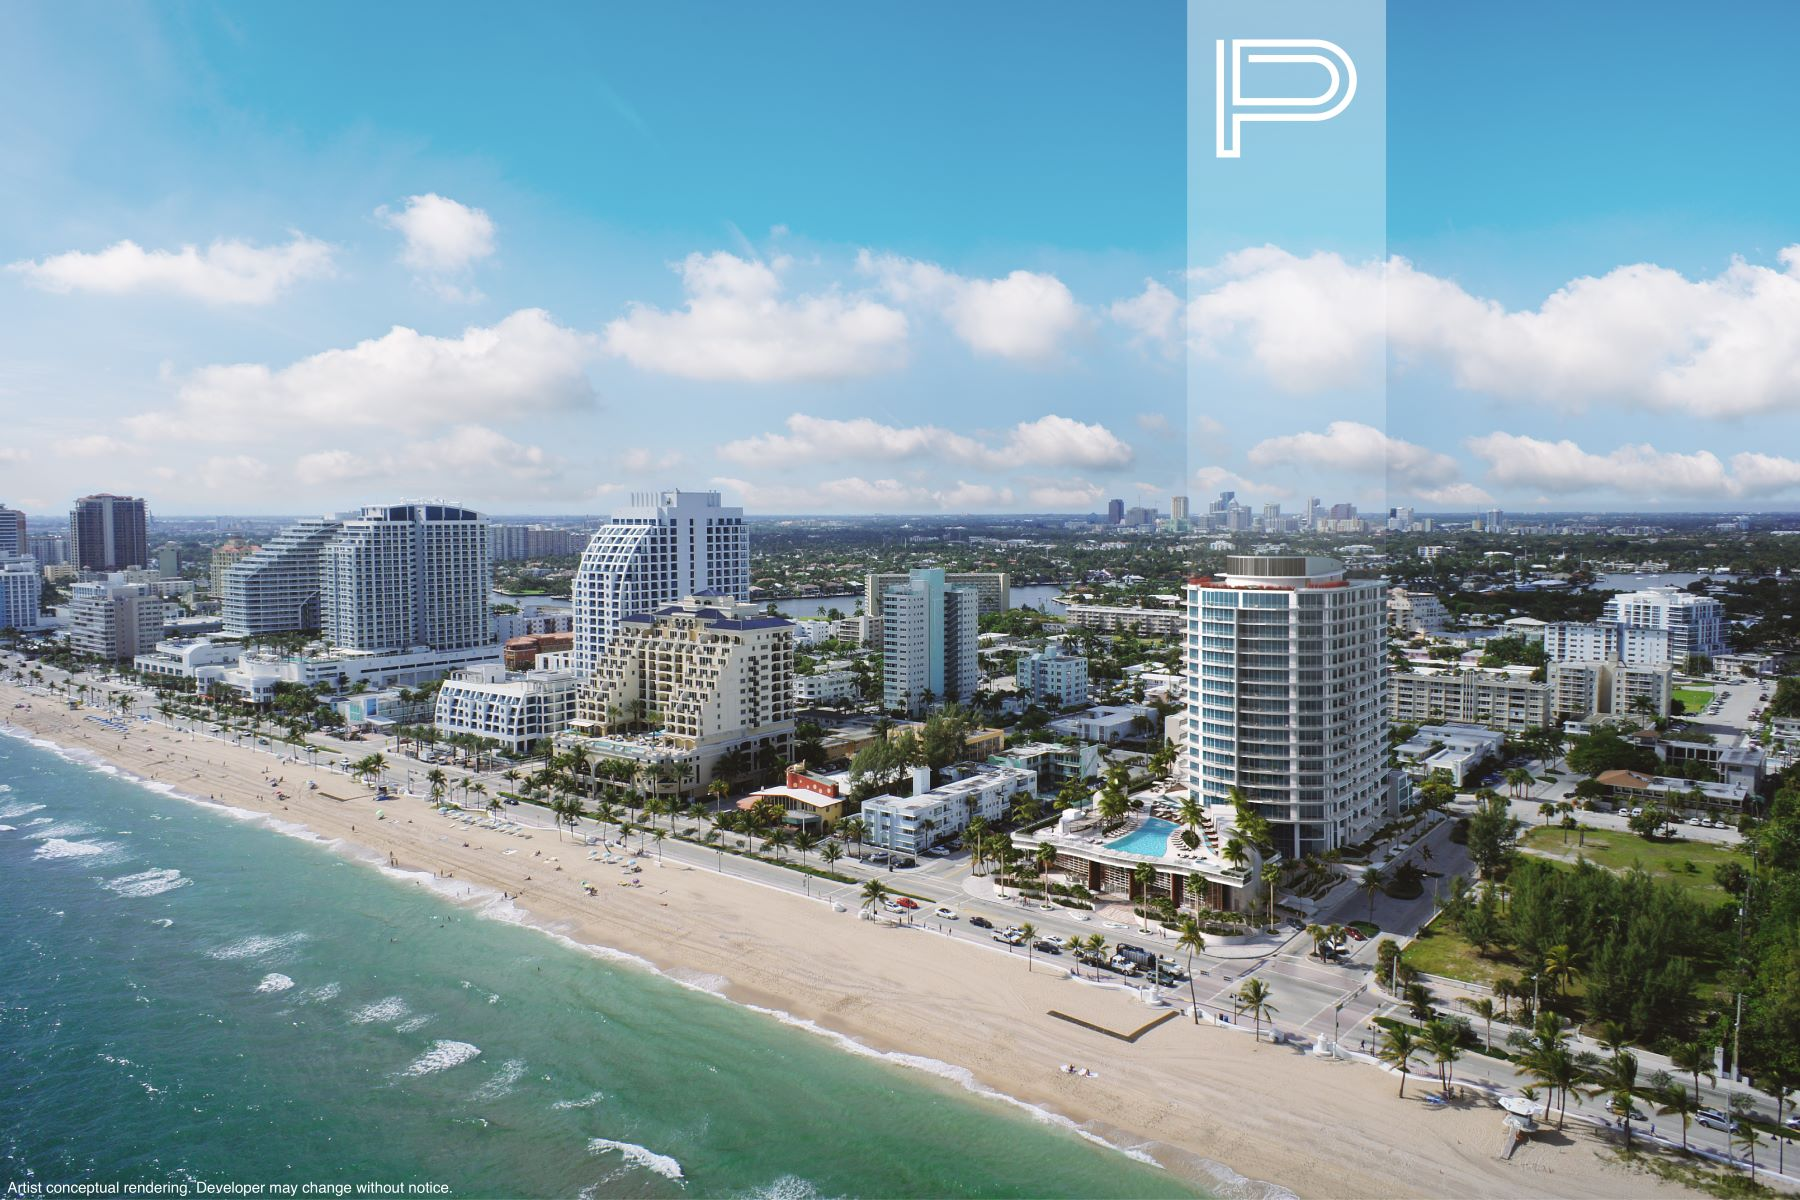 Condominium for Sale at 701 N Fort Lauderdale Beach Blvd #1702 701 N Fort Lauderdale Beach Blvd 1702 Fort Lauderdale, Florida 33304 United States